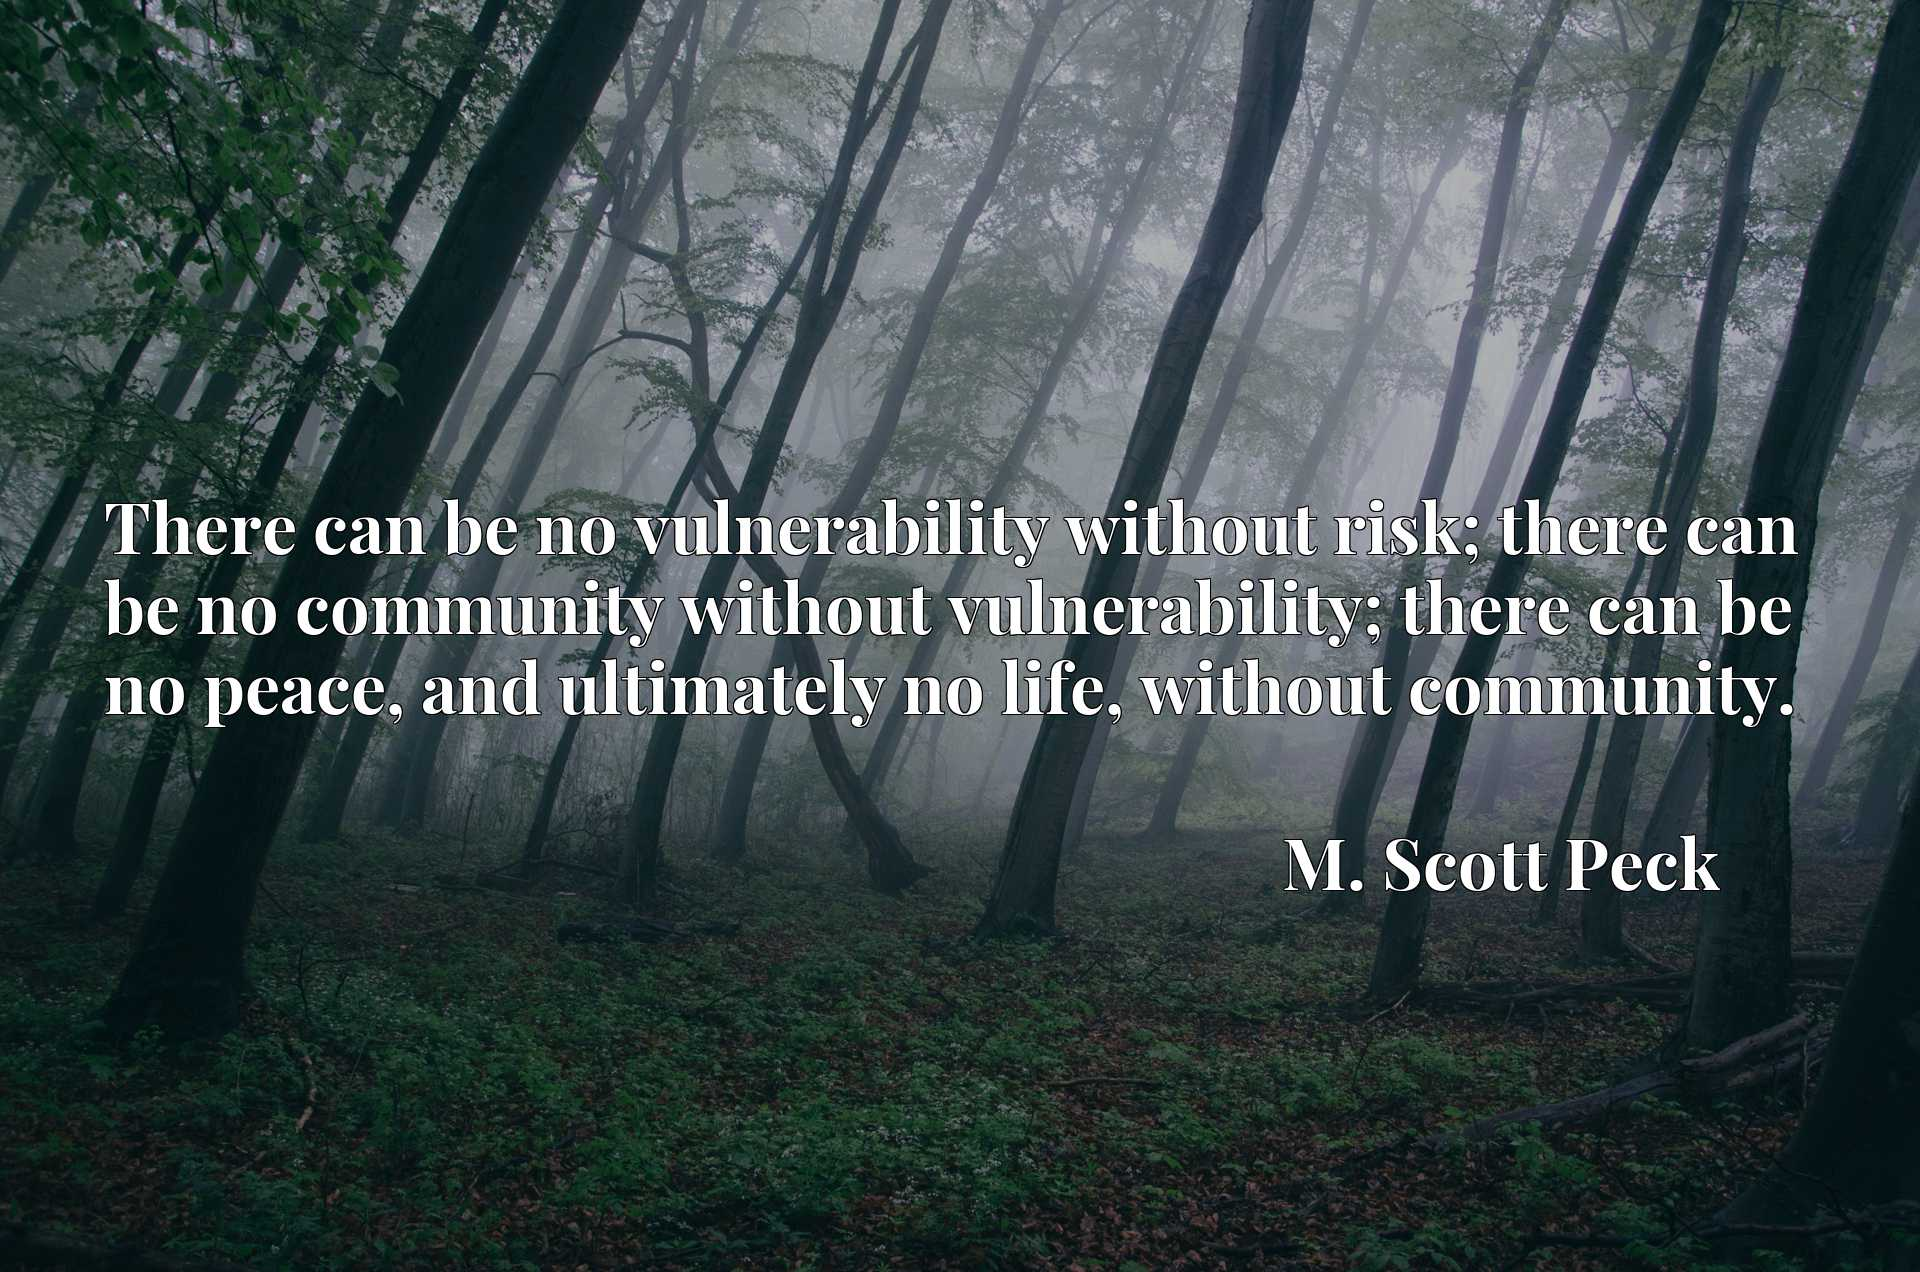 There can be no vulnerability without risk; there can be no community without vulnerability; there can be no peace, and ultimately no life, without community.